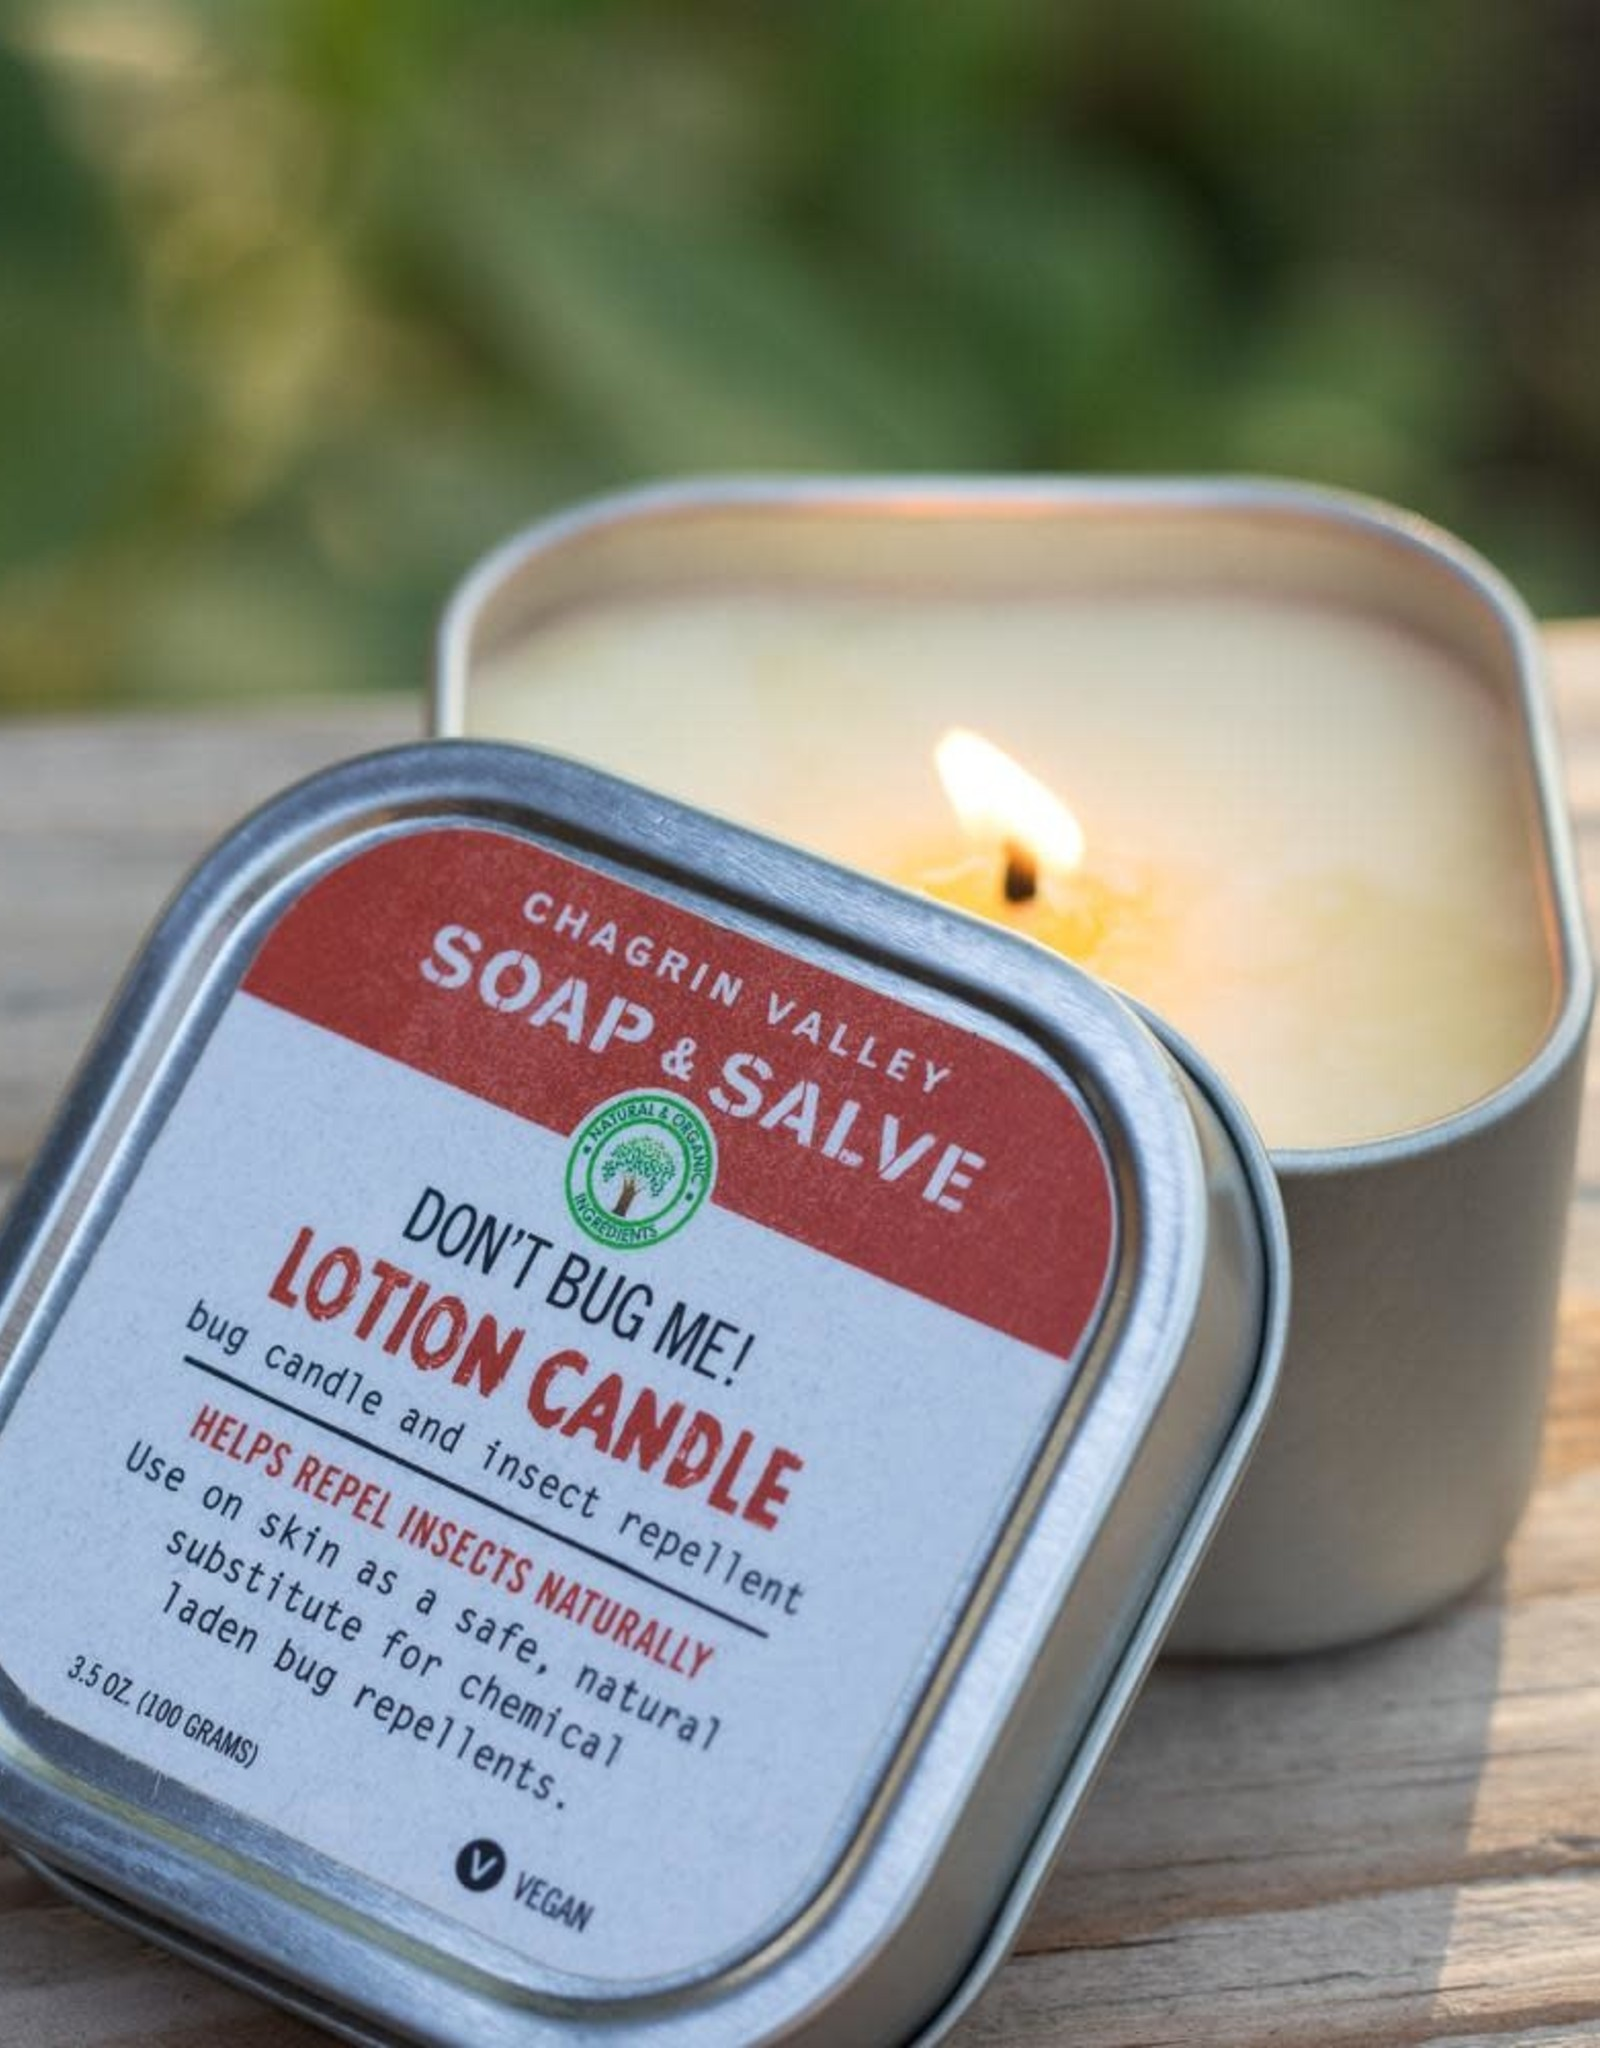 chagrin valley Don't Bug Me! Lotion Candle